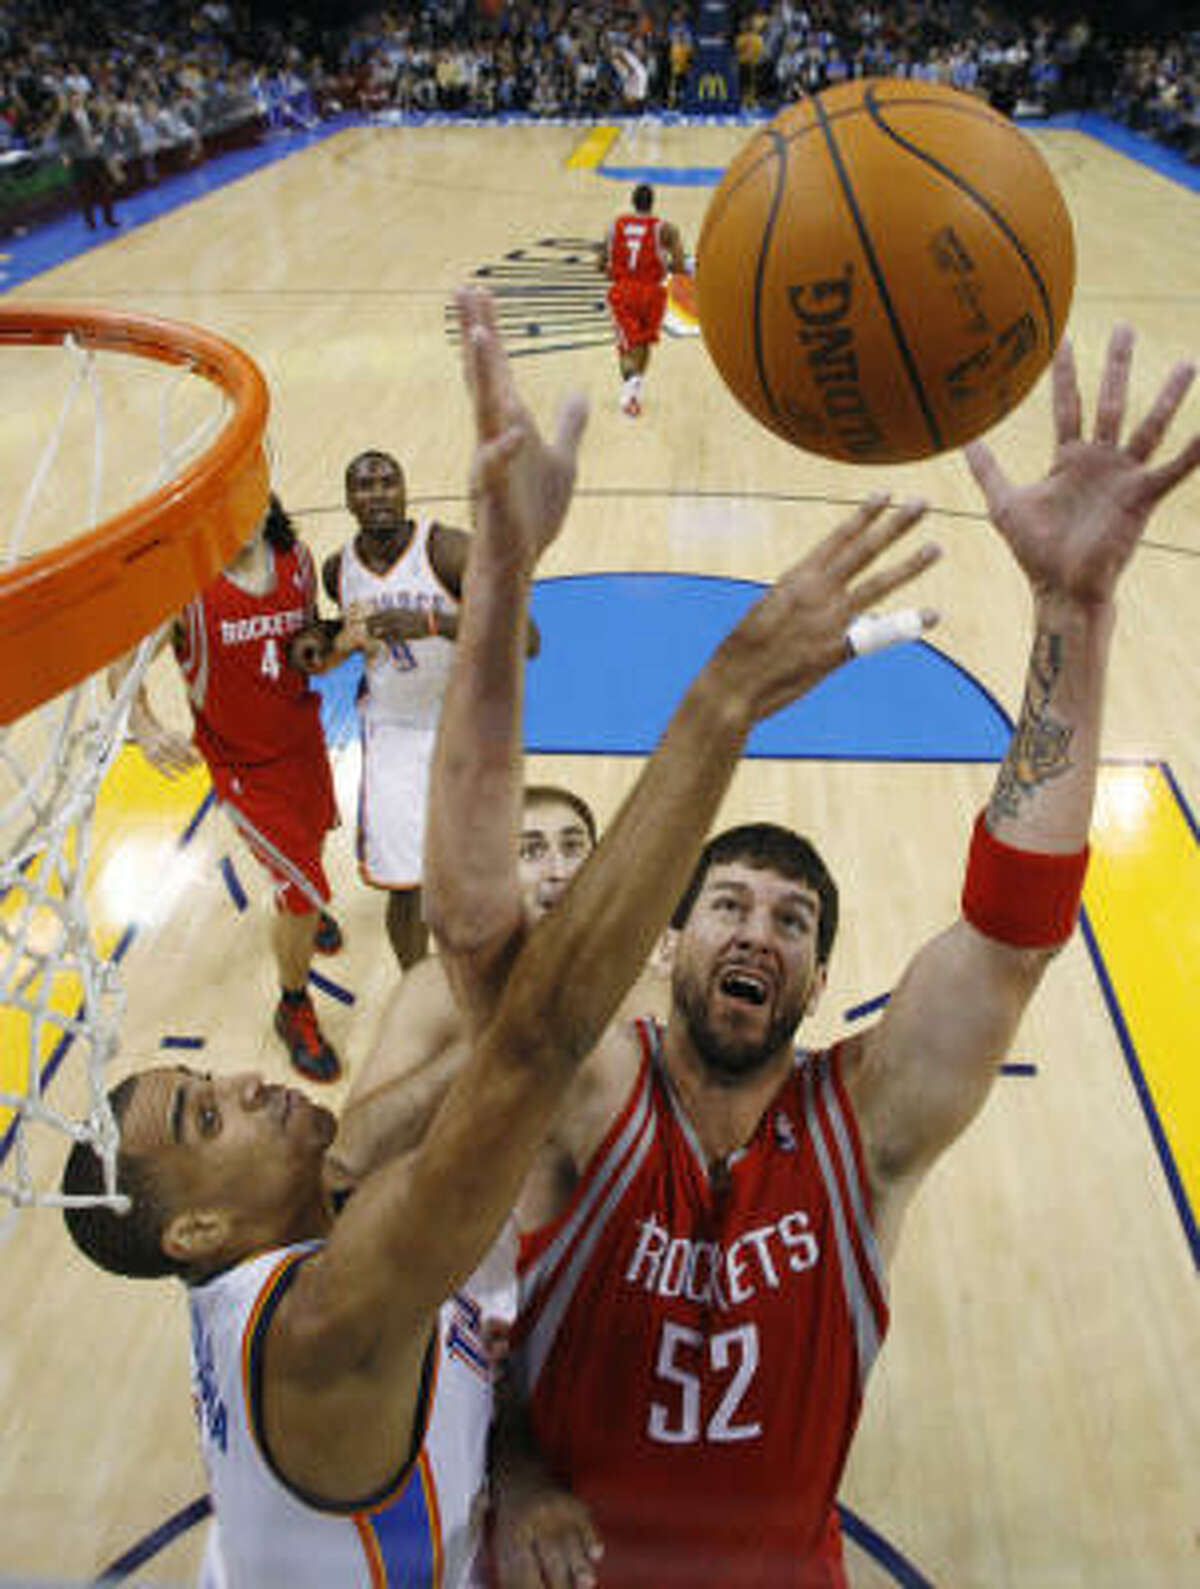 Thunder guard Thabo Sefolosha and Rockets center Brad Miller, right, battle for a rebound in the first quarter.